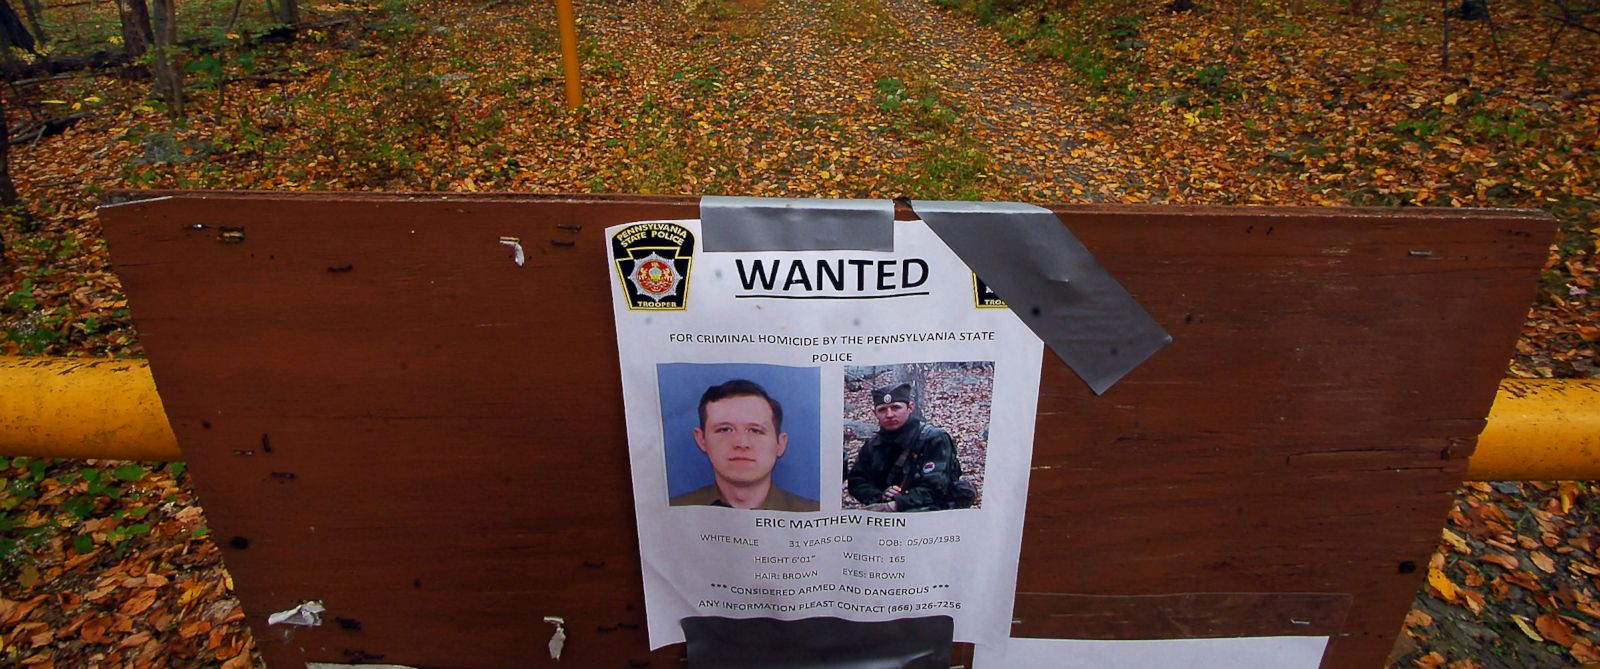 PHOTO: A wanted poster of suspected killer Eric Frein is posted at an entrance to a trail in the woods, Oct. 2, 2014, in Barrett Township near Canadensis, Pa.